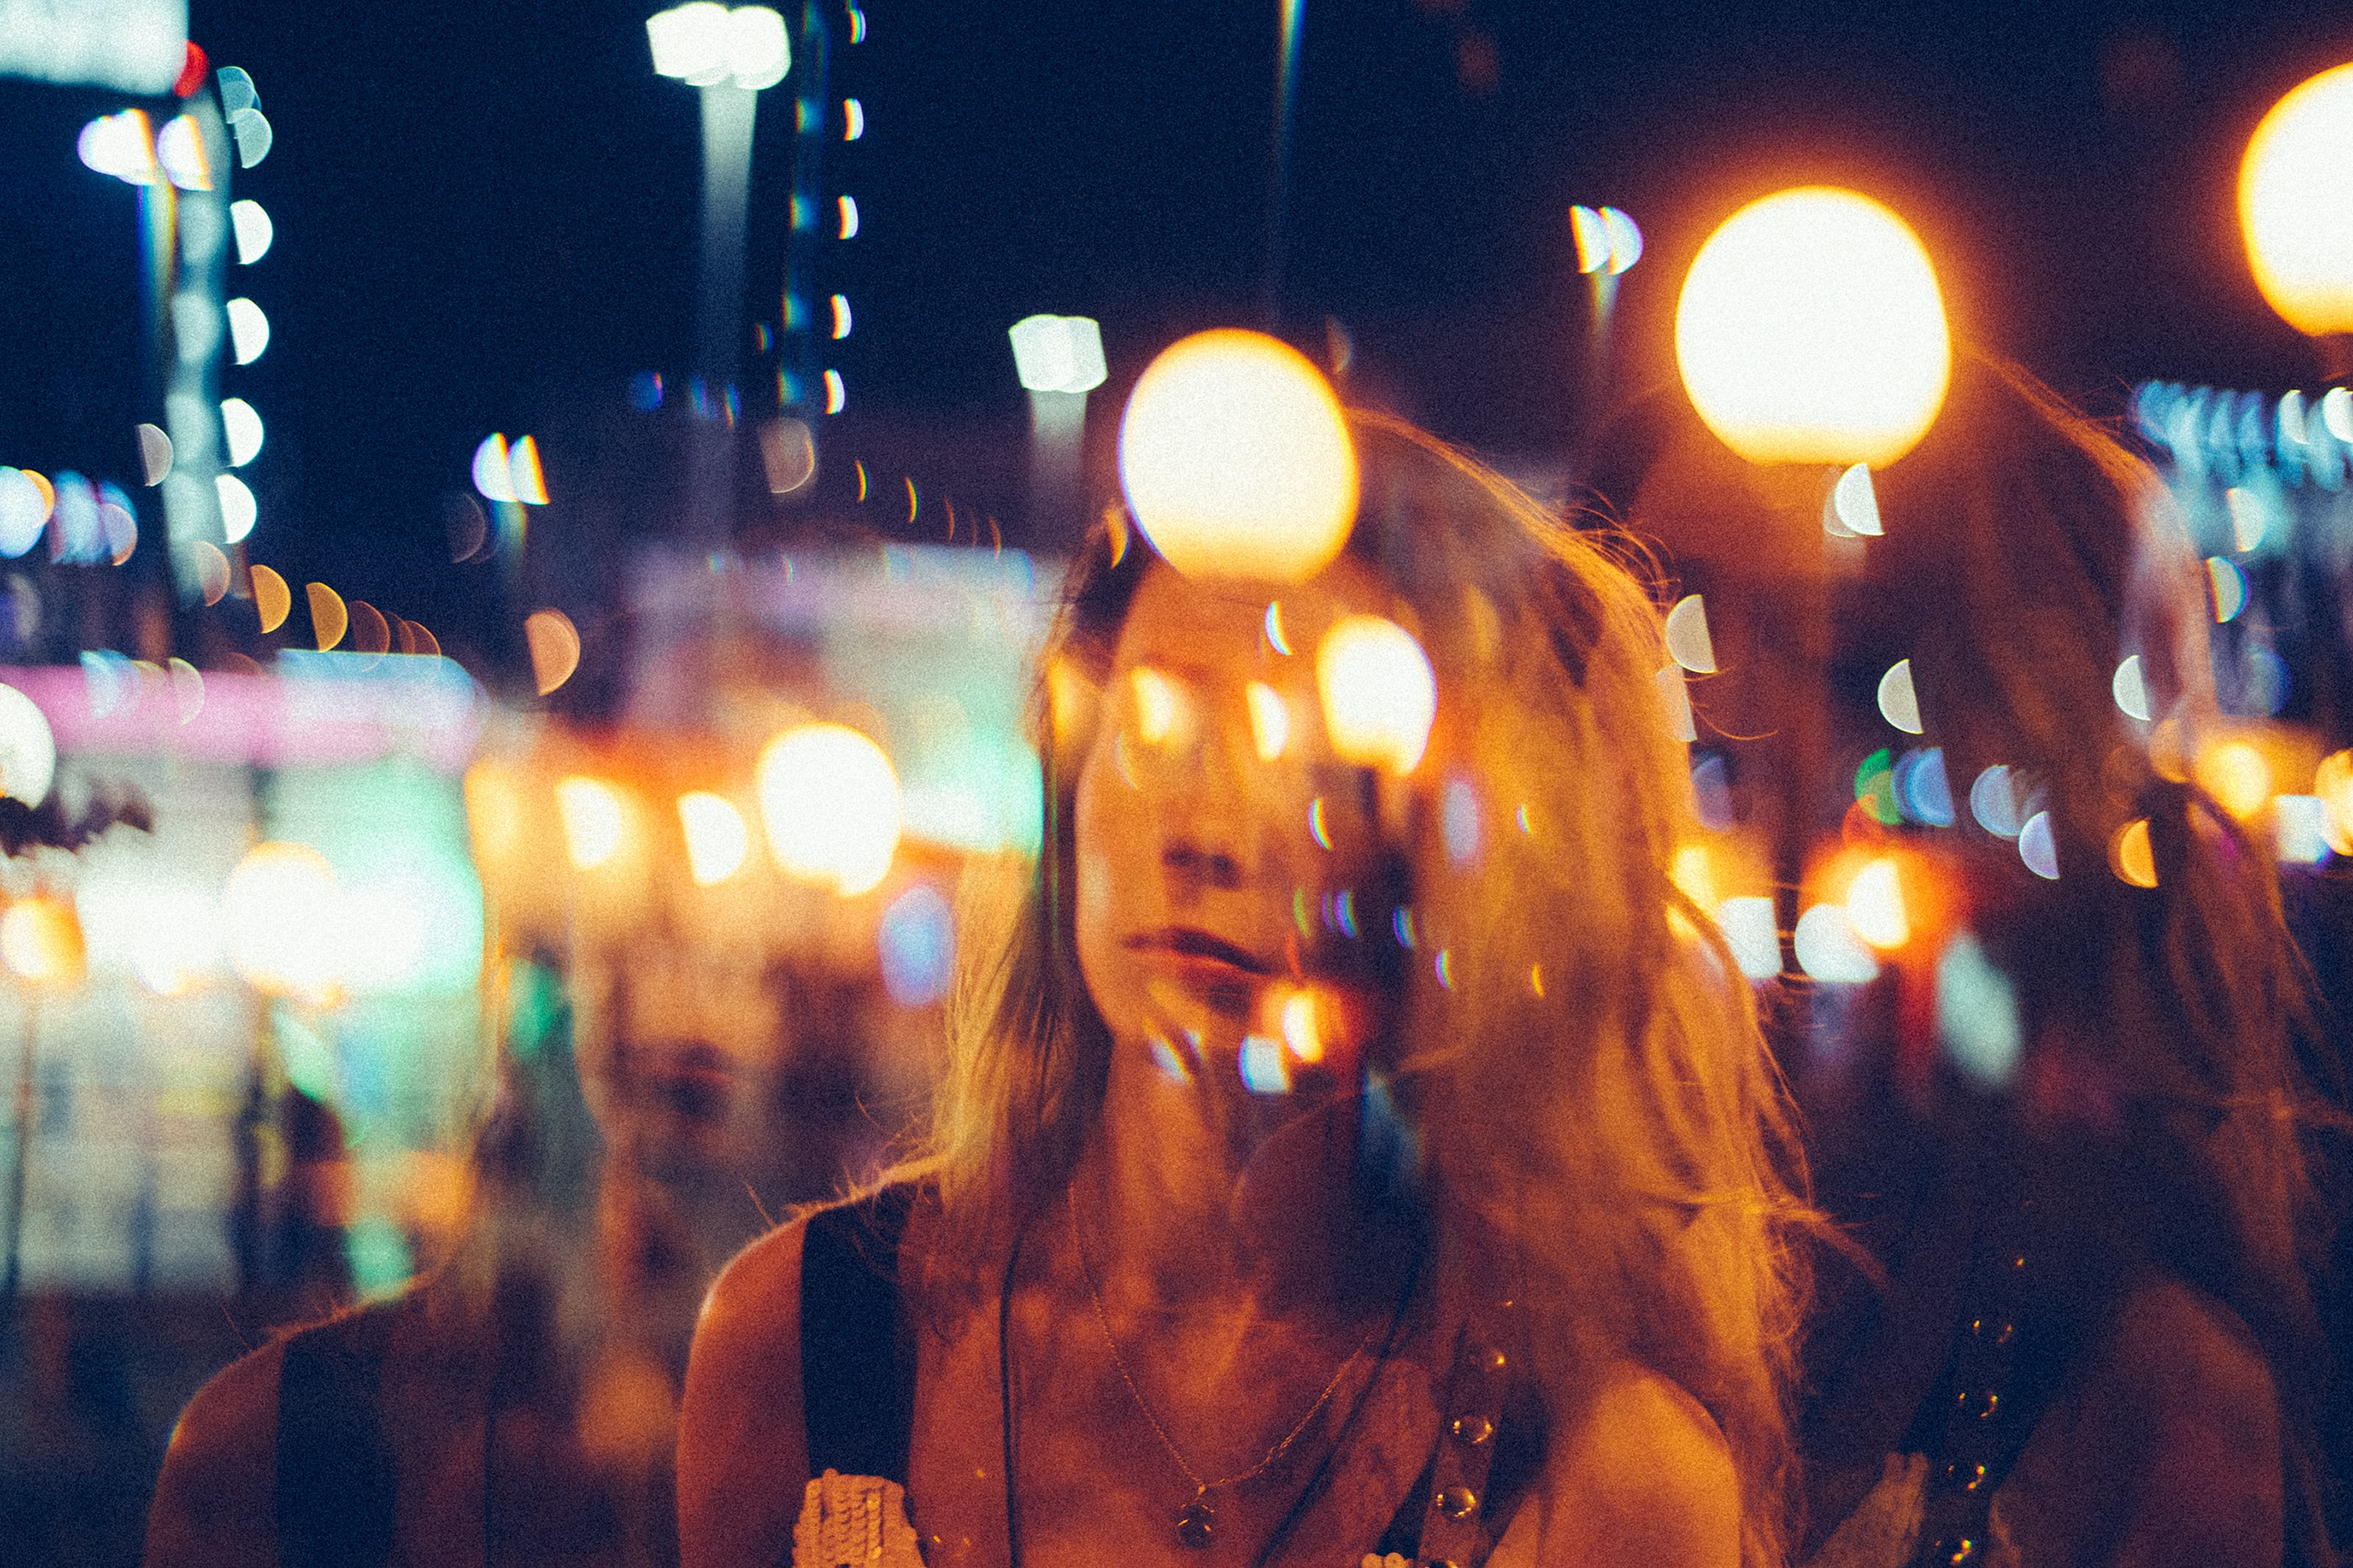 bokeh photo of woman standing near sea at night time